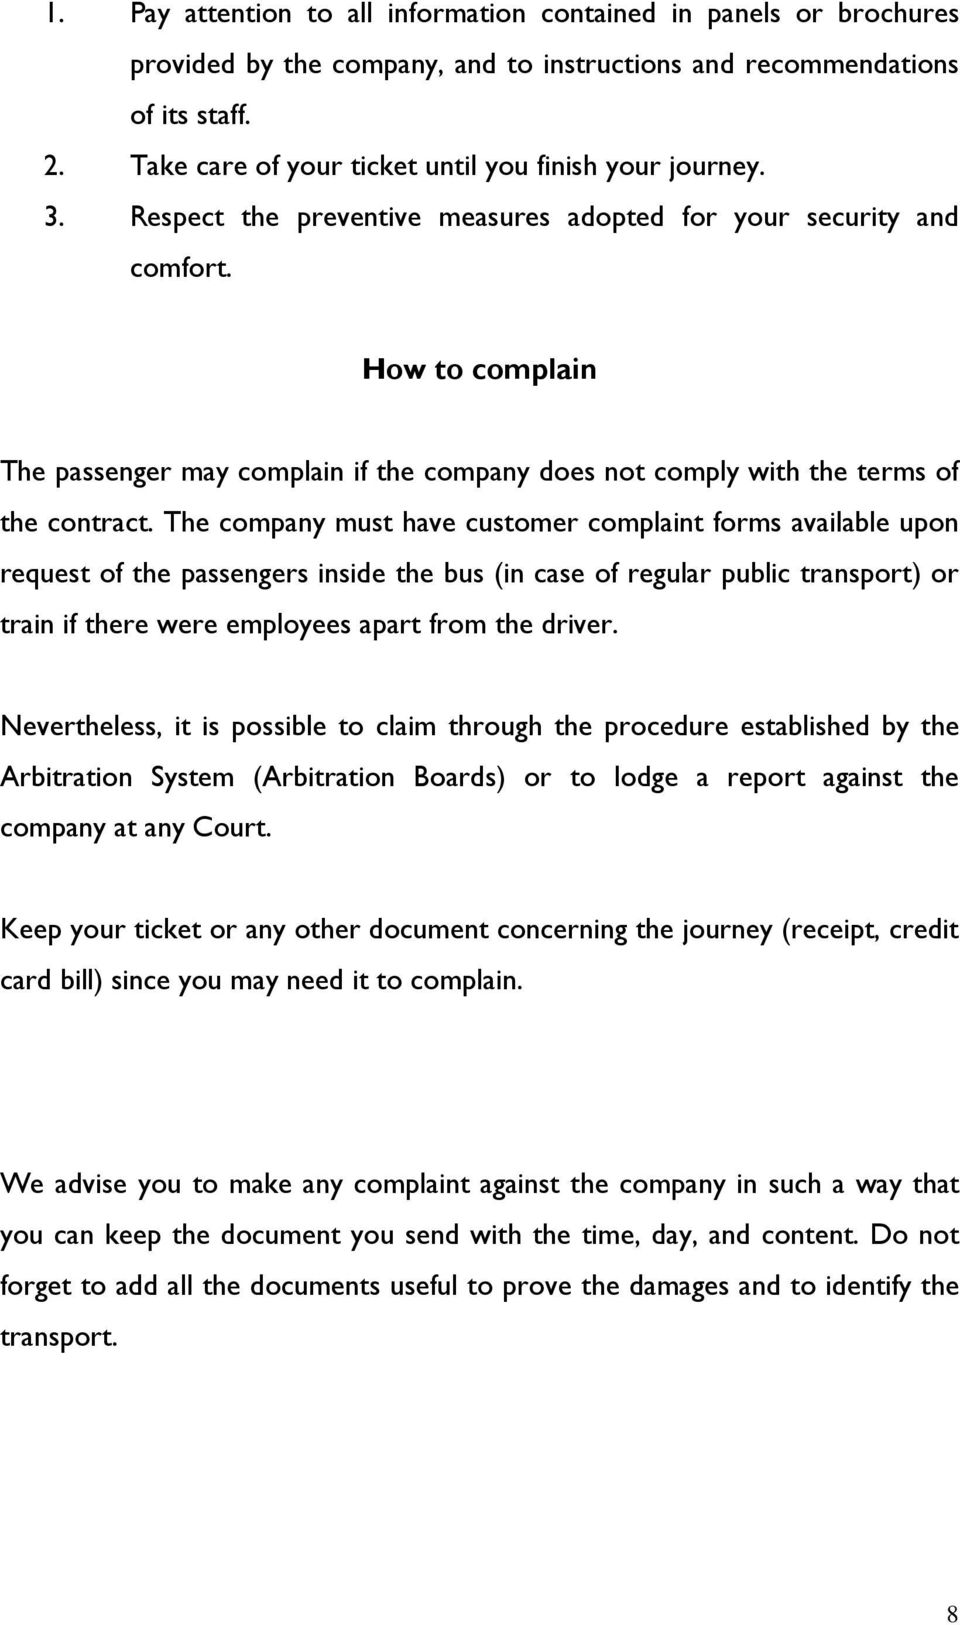 How to complain The passenger may complain if the company does not comply with the terms of the contract.